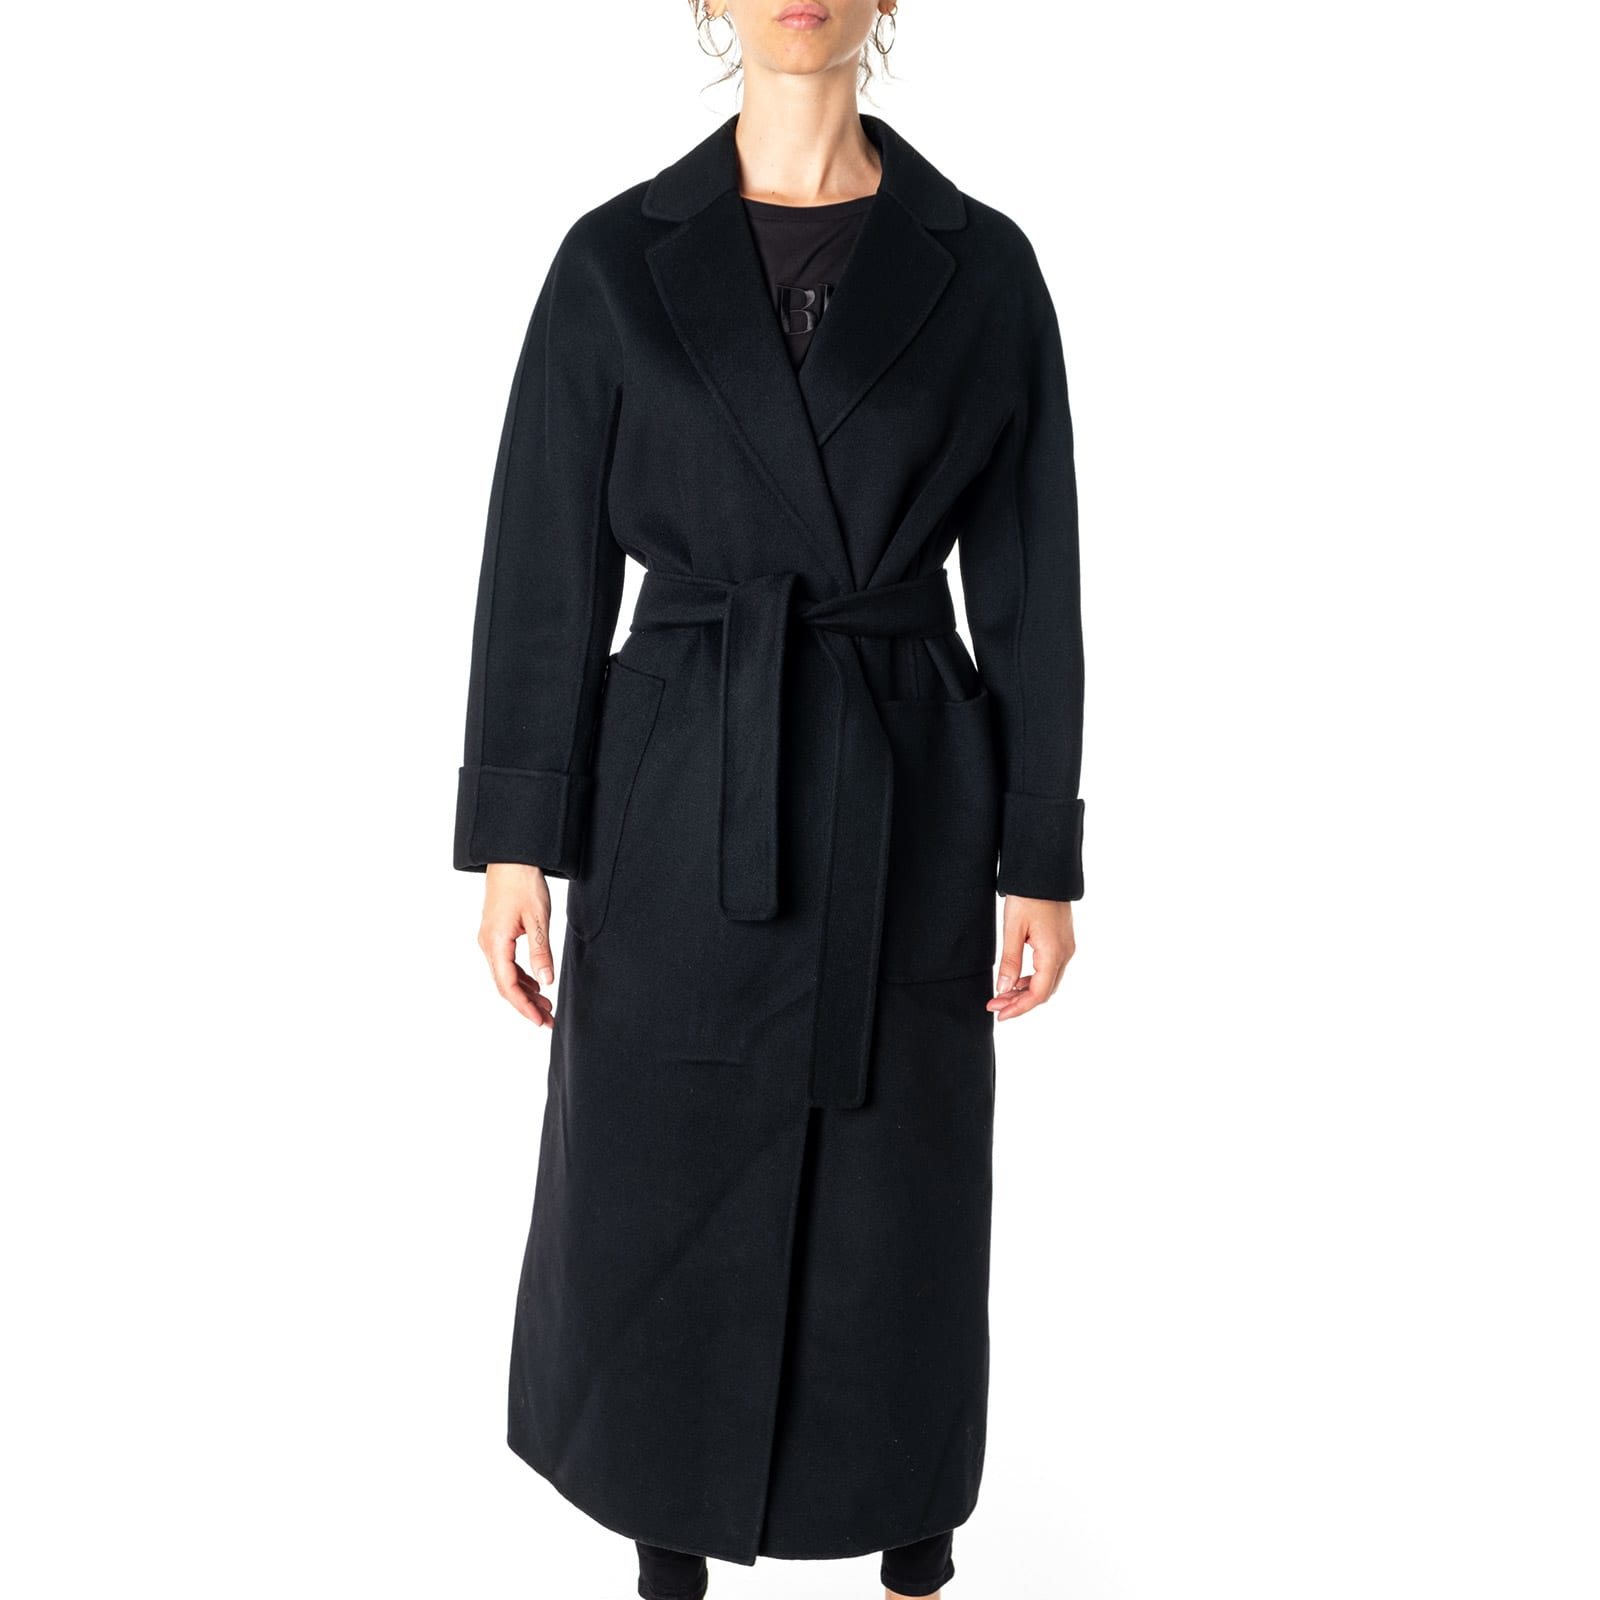 S Max Mara Here is The Cube Coat